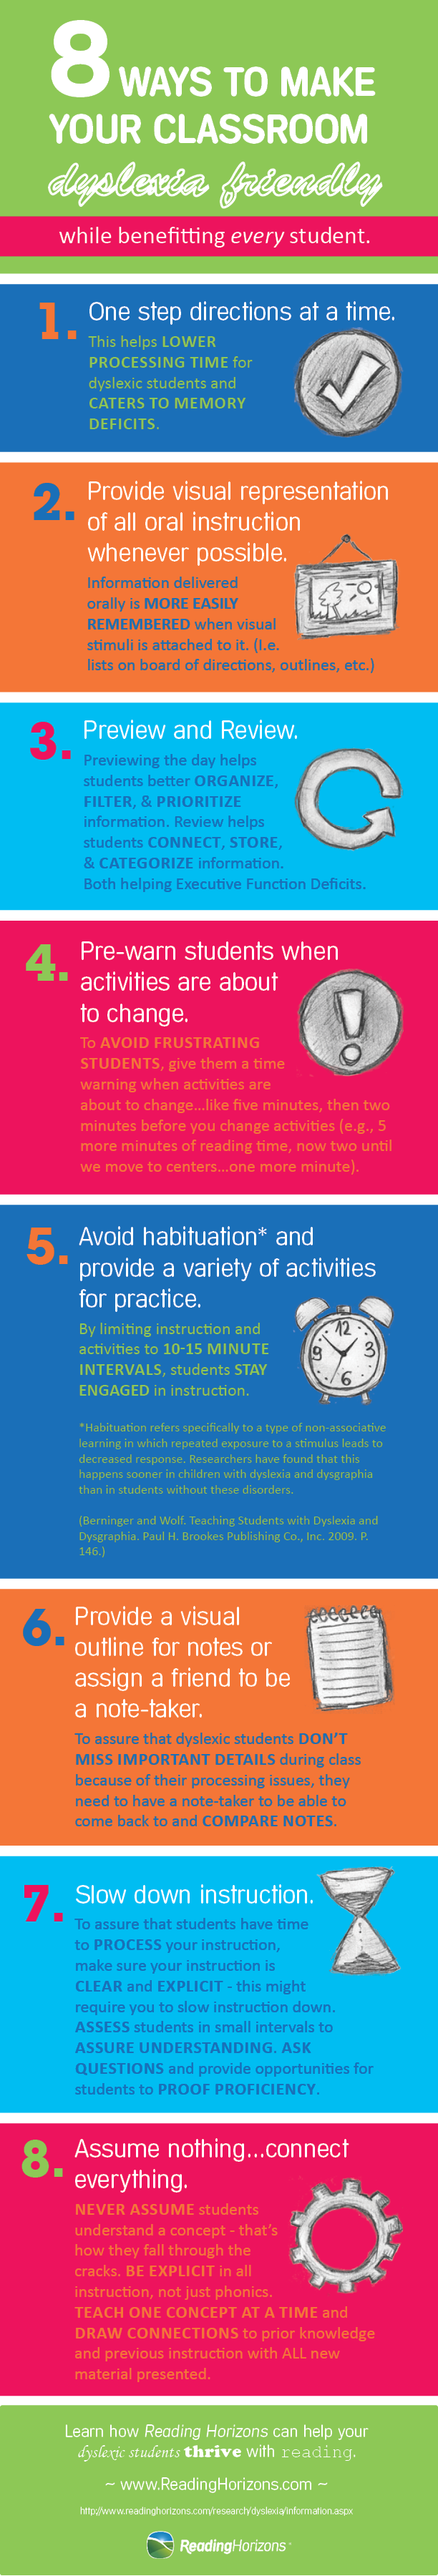 8 Ways to Make Your Classroom Dyslexia Friendly – Infographic | Mr ...